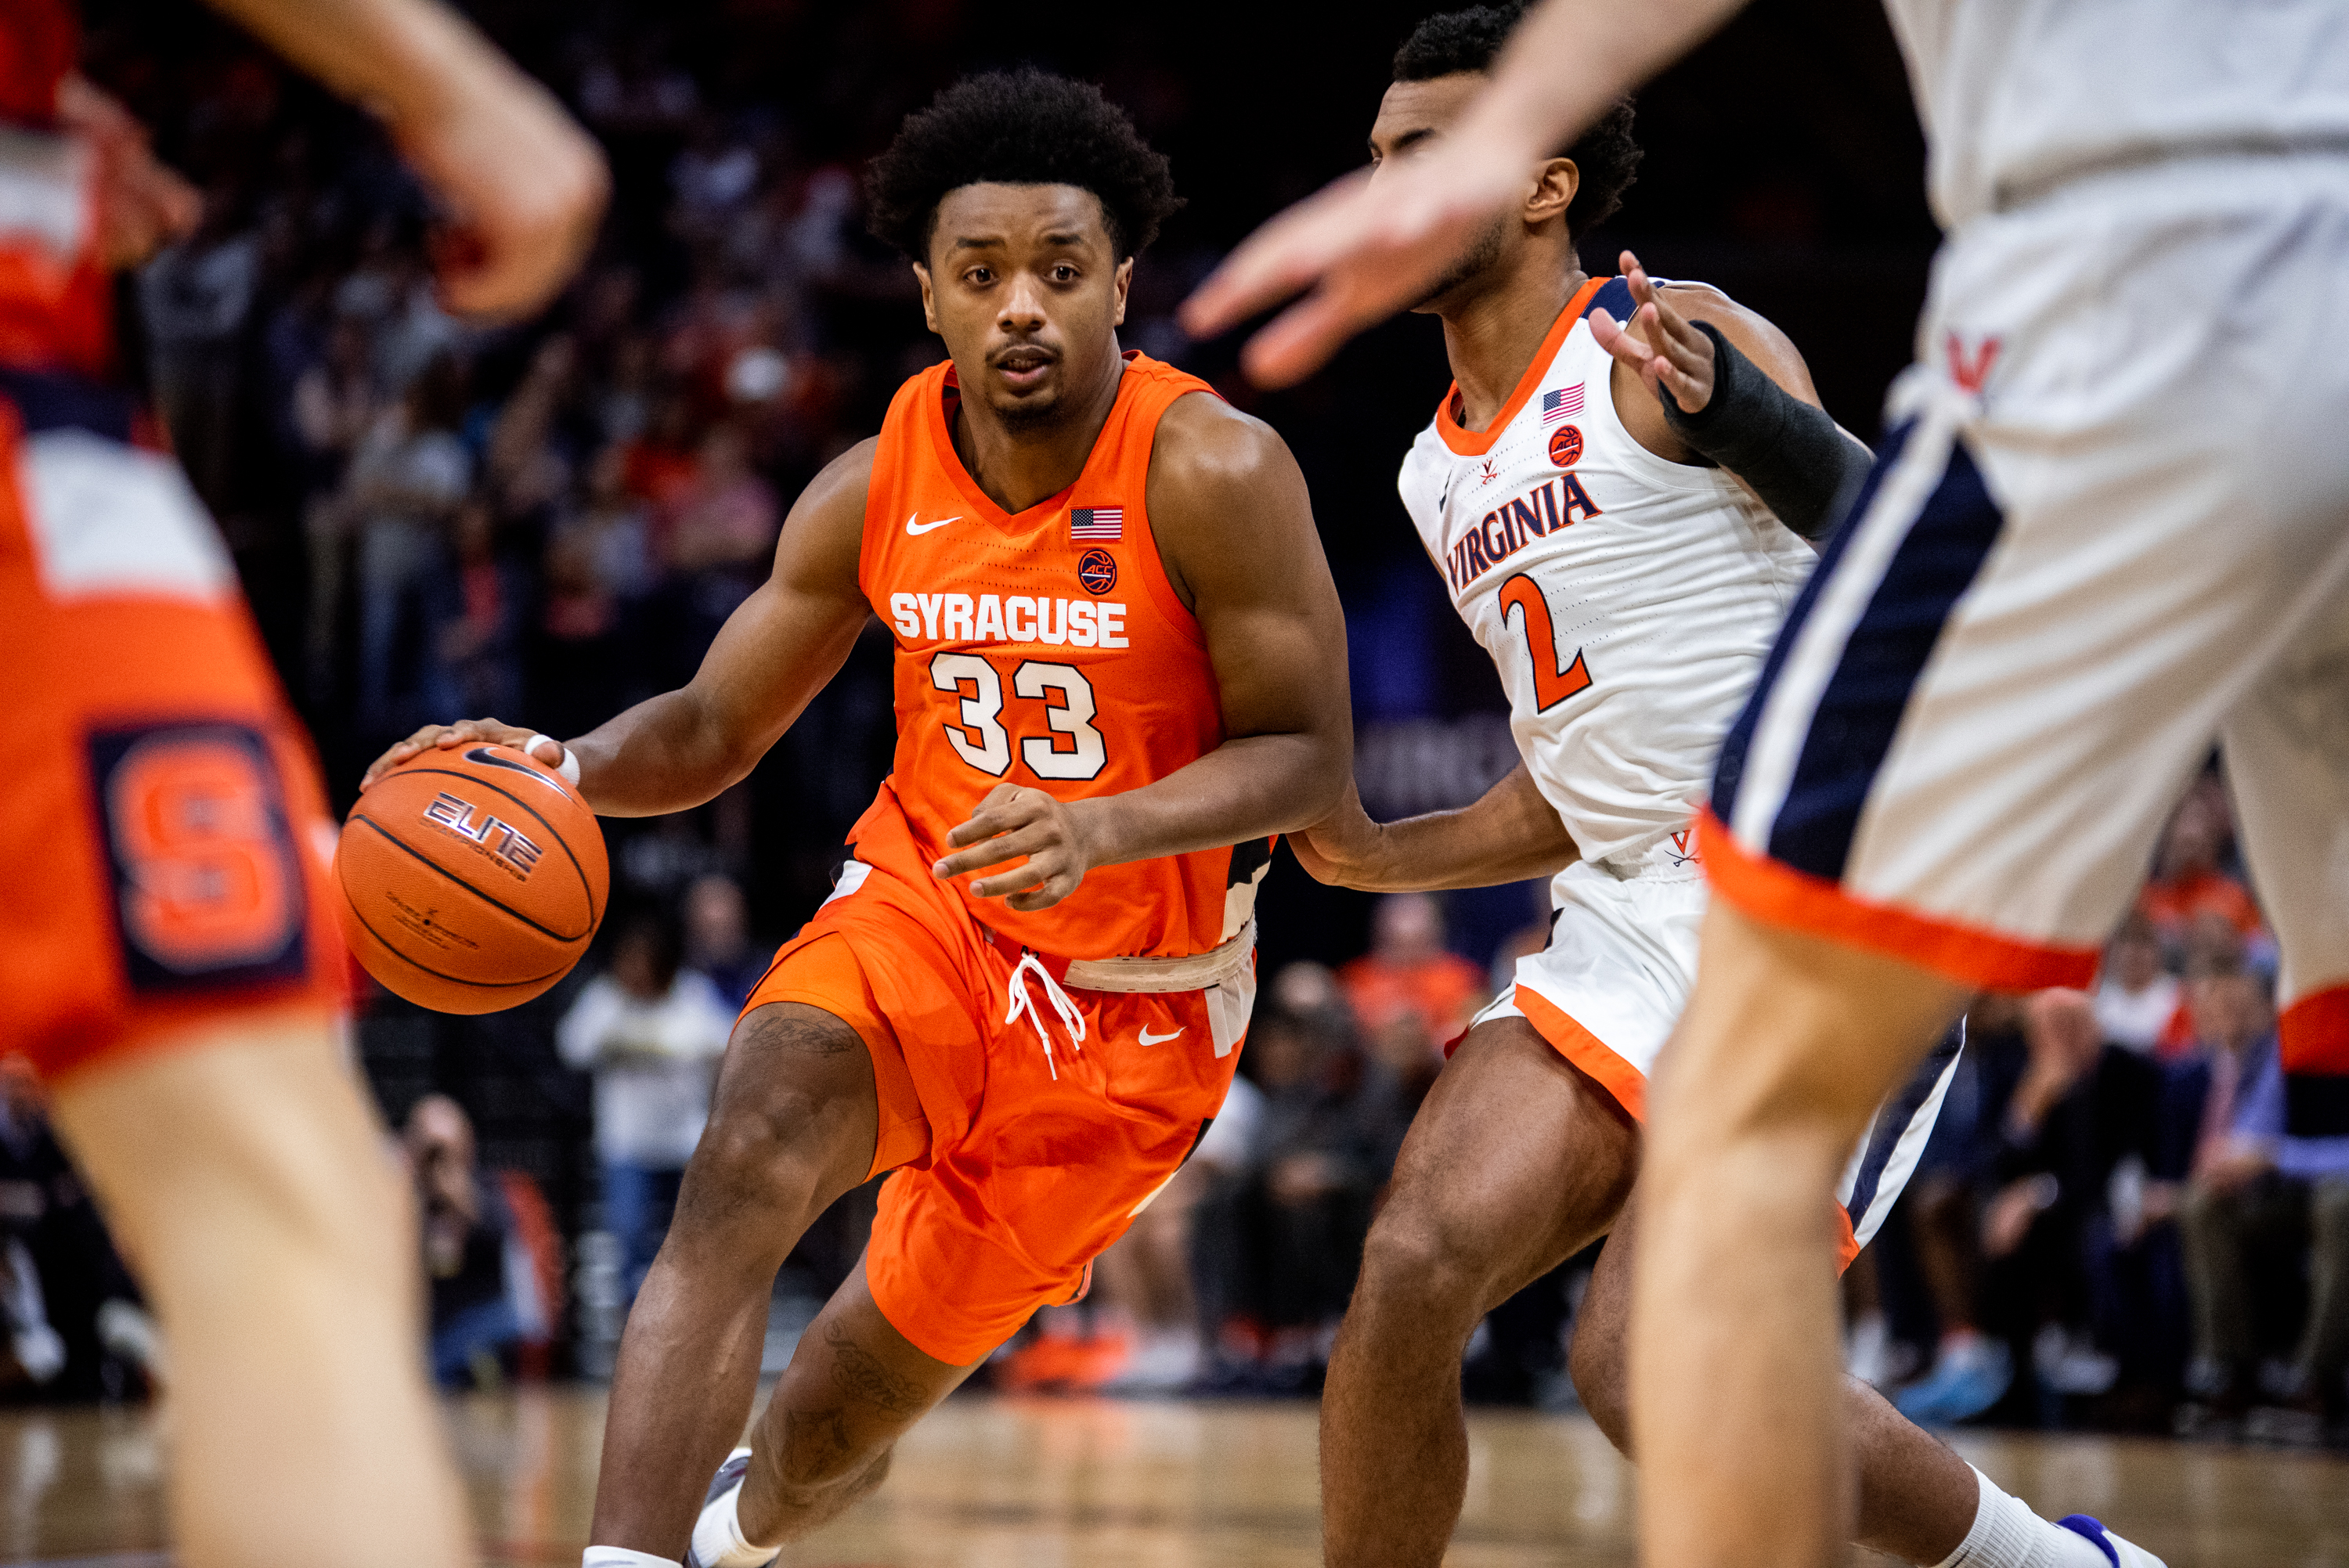 Syracuse University vs. University of Virginia